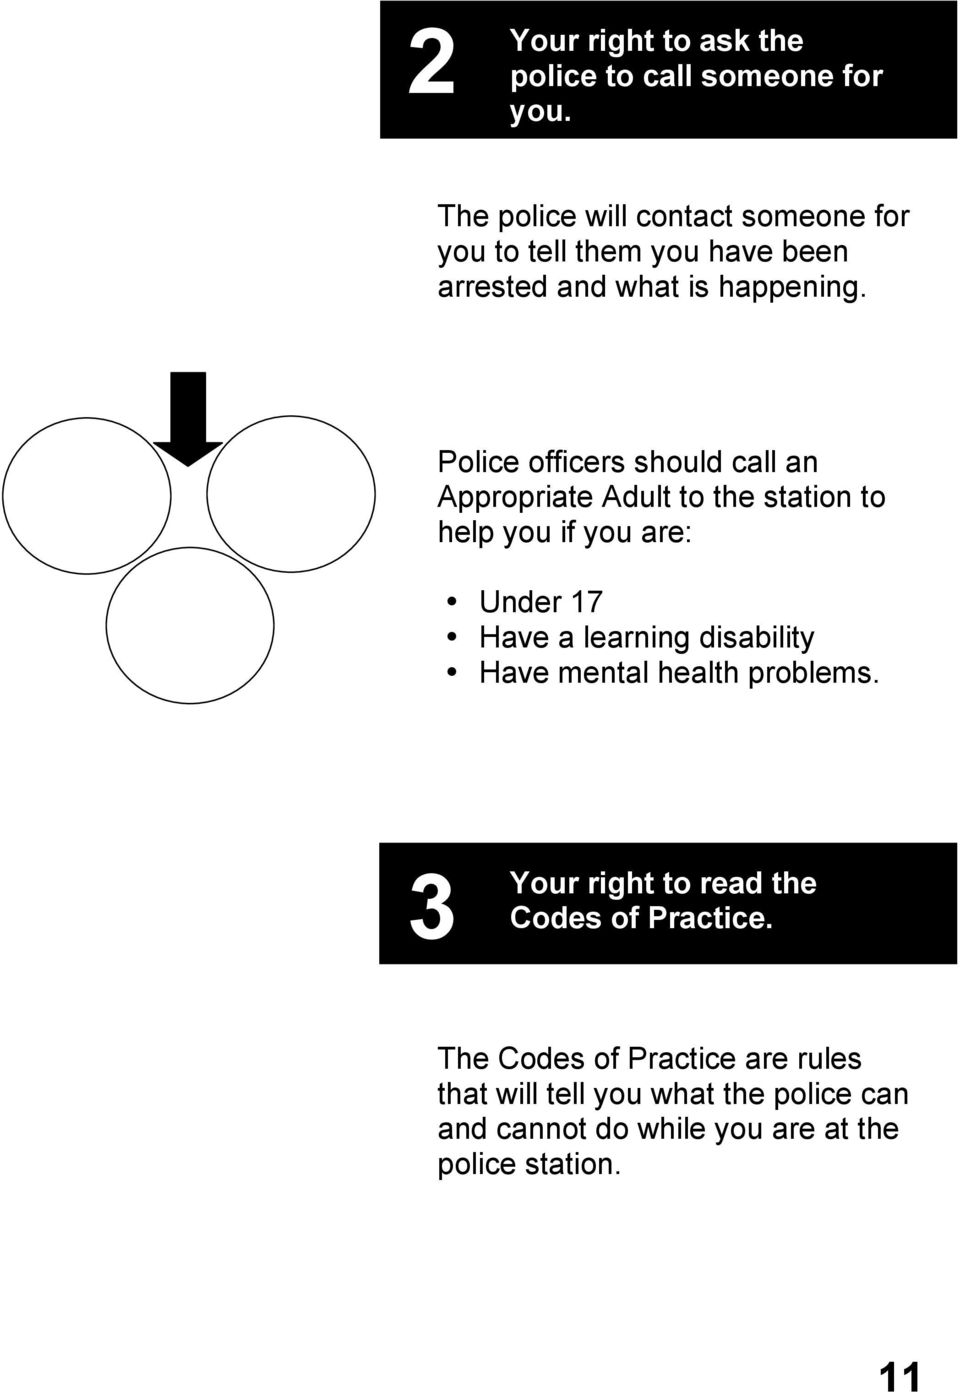 Police officers should call an Appropriate Adult to the station to help you if you are: Under 17 Have a learning